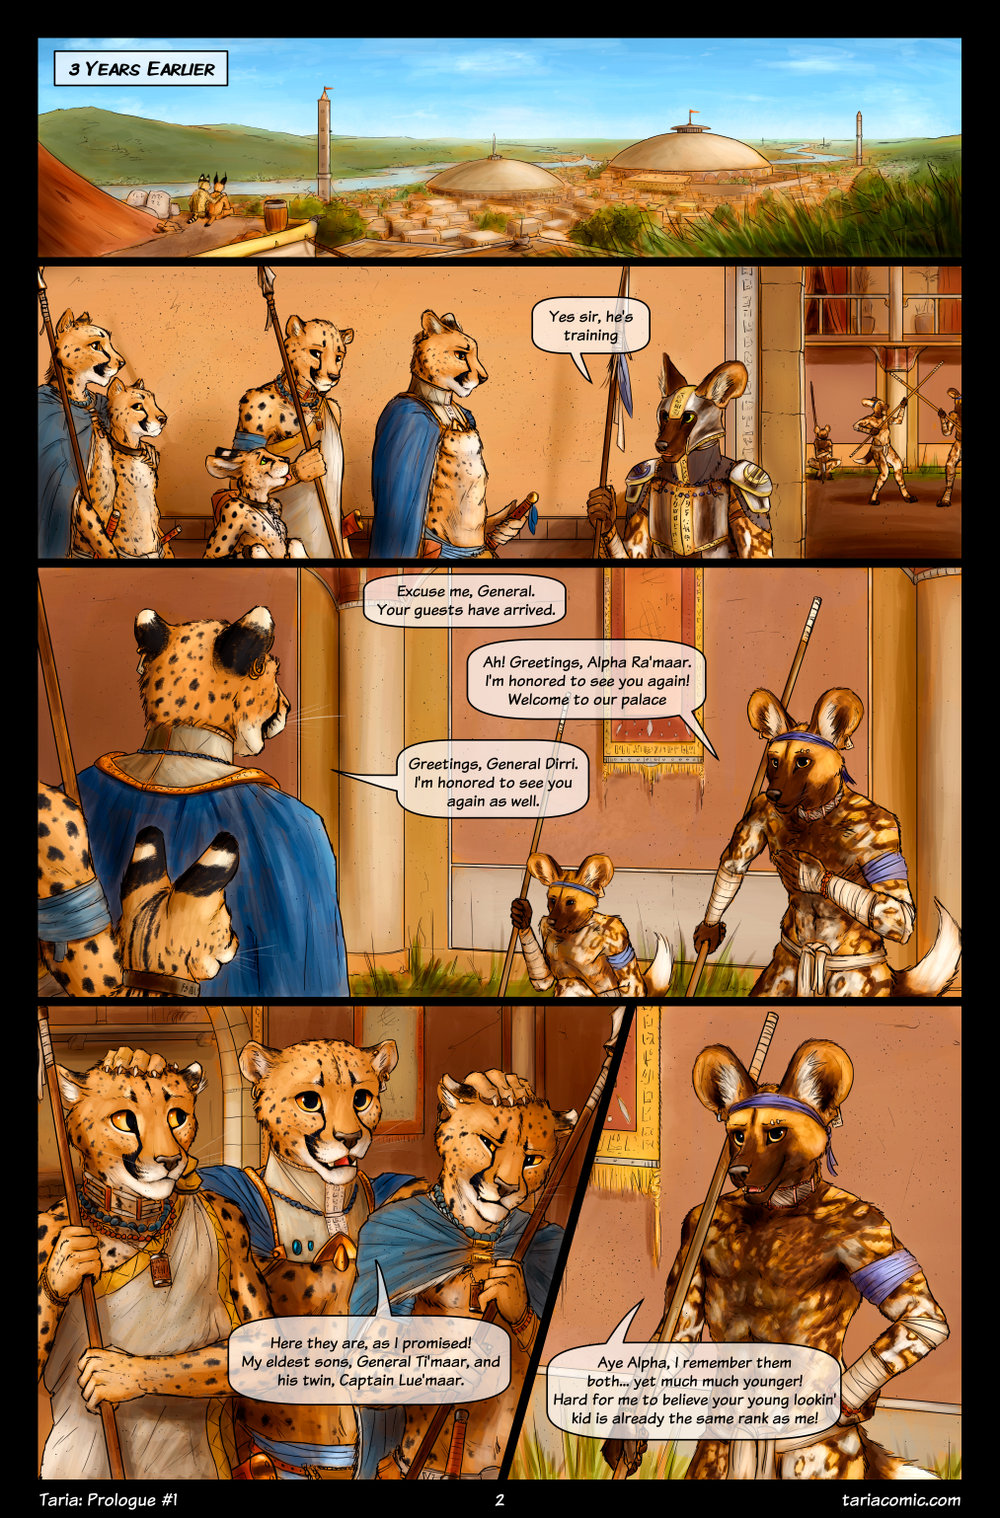 Taria_Prologue_#1 Pg 2 sRGB.jpg